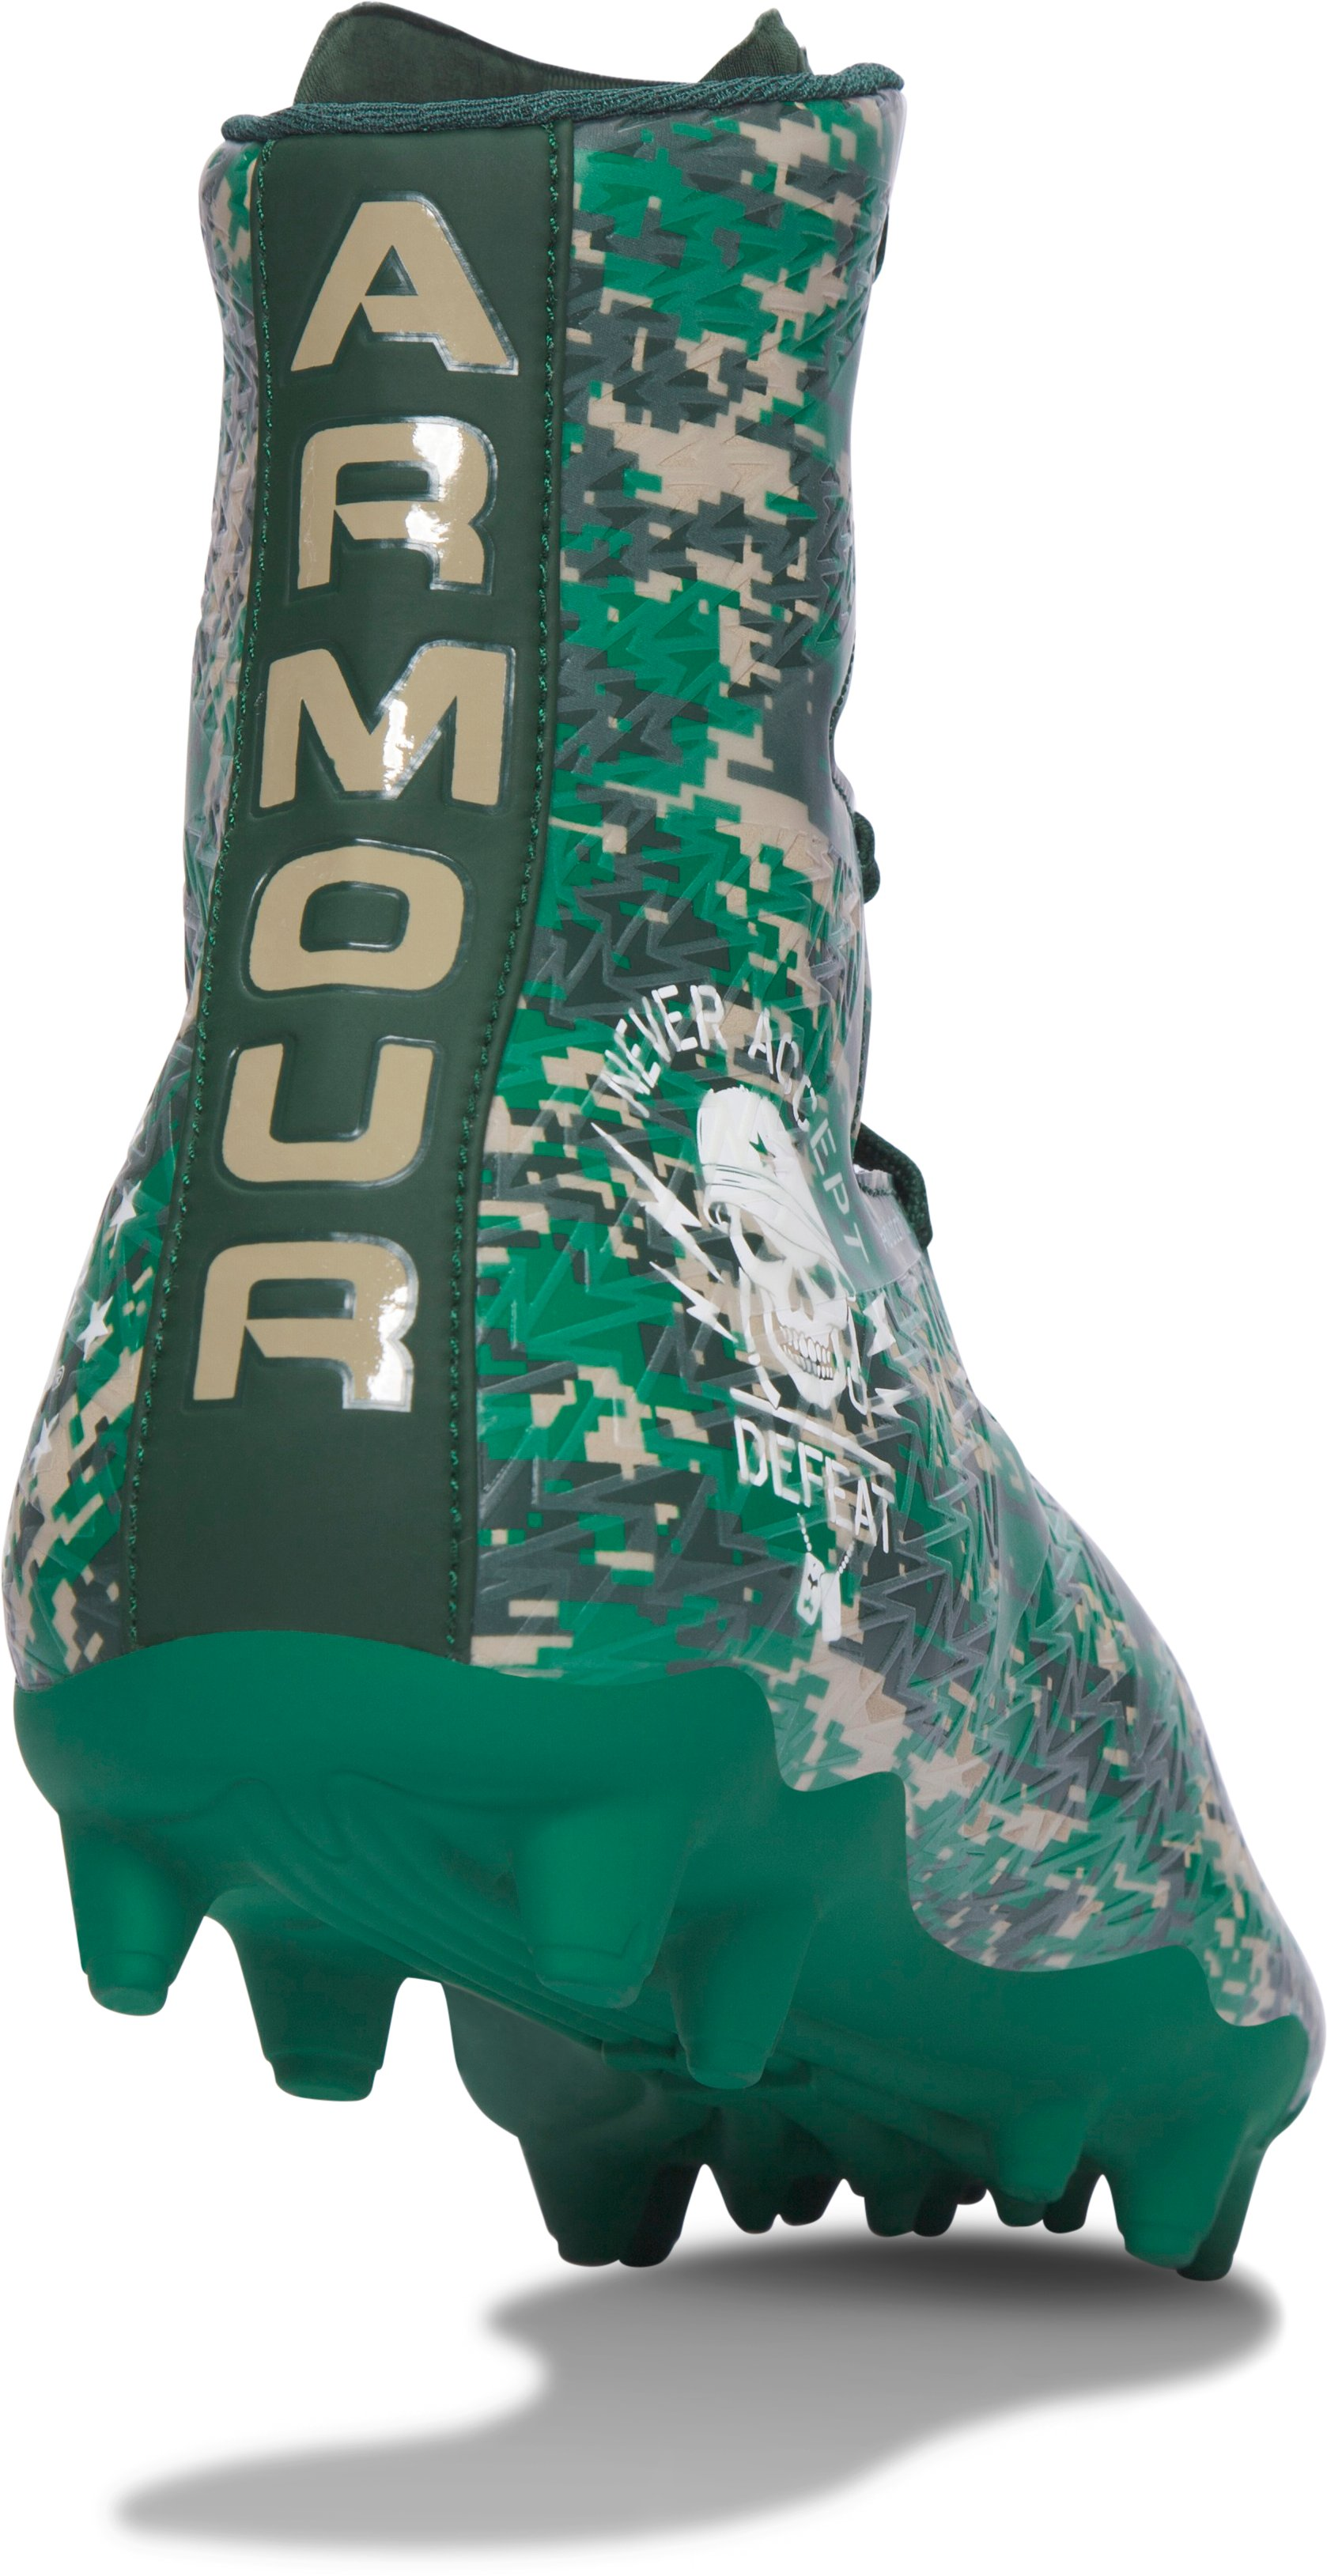 Men's UA Highlight MC — Limited Edition Football Cleats, Forest Green